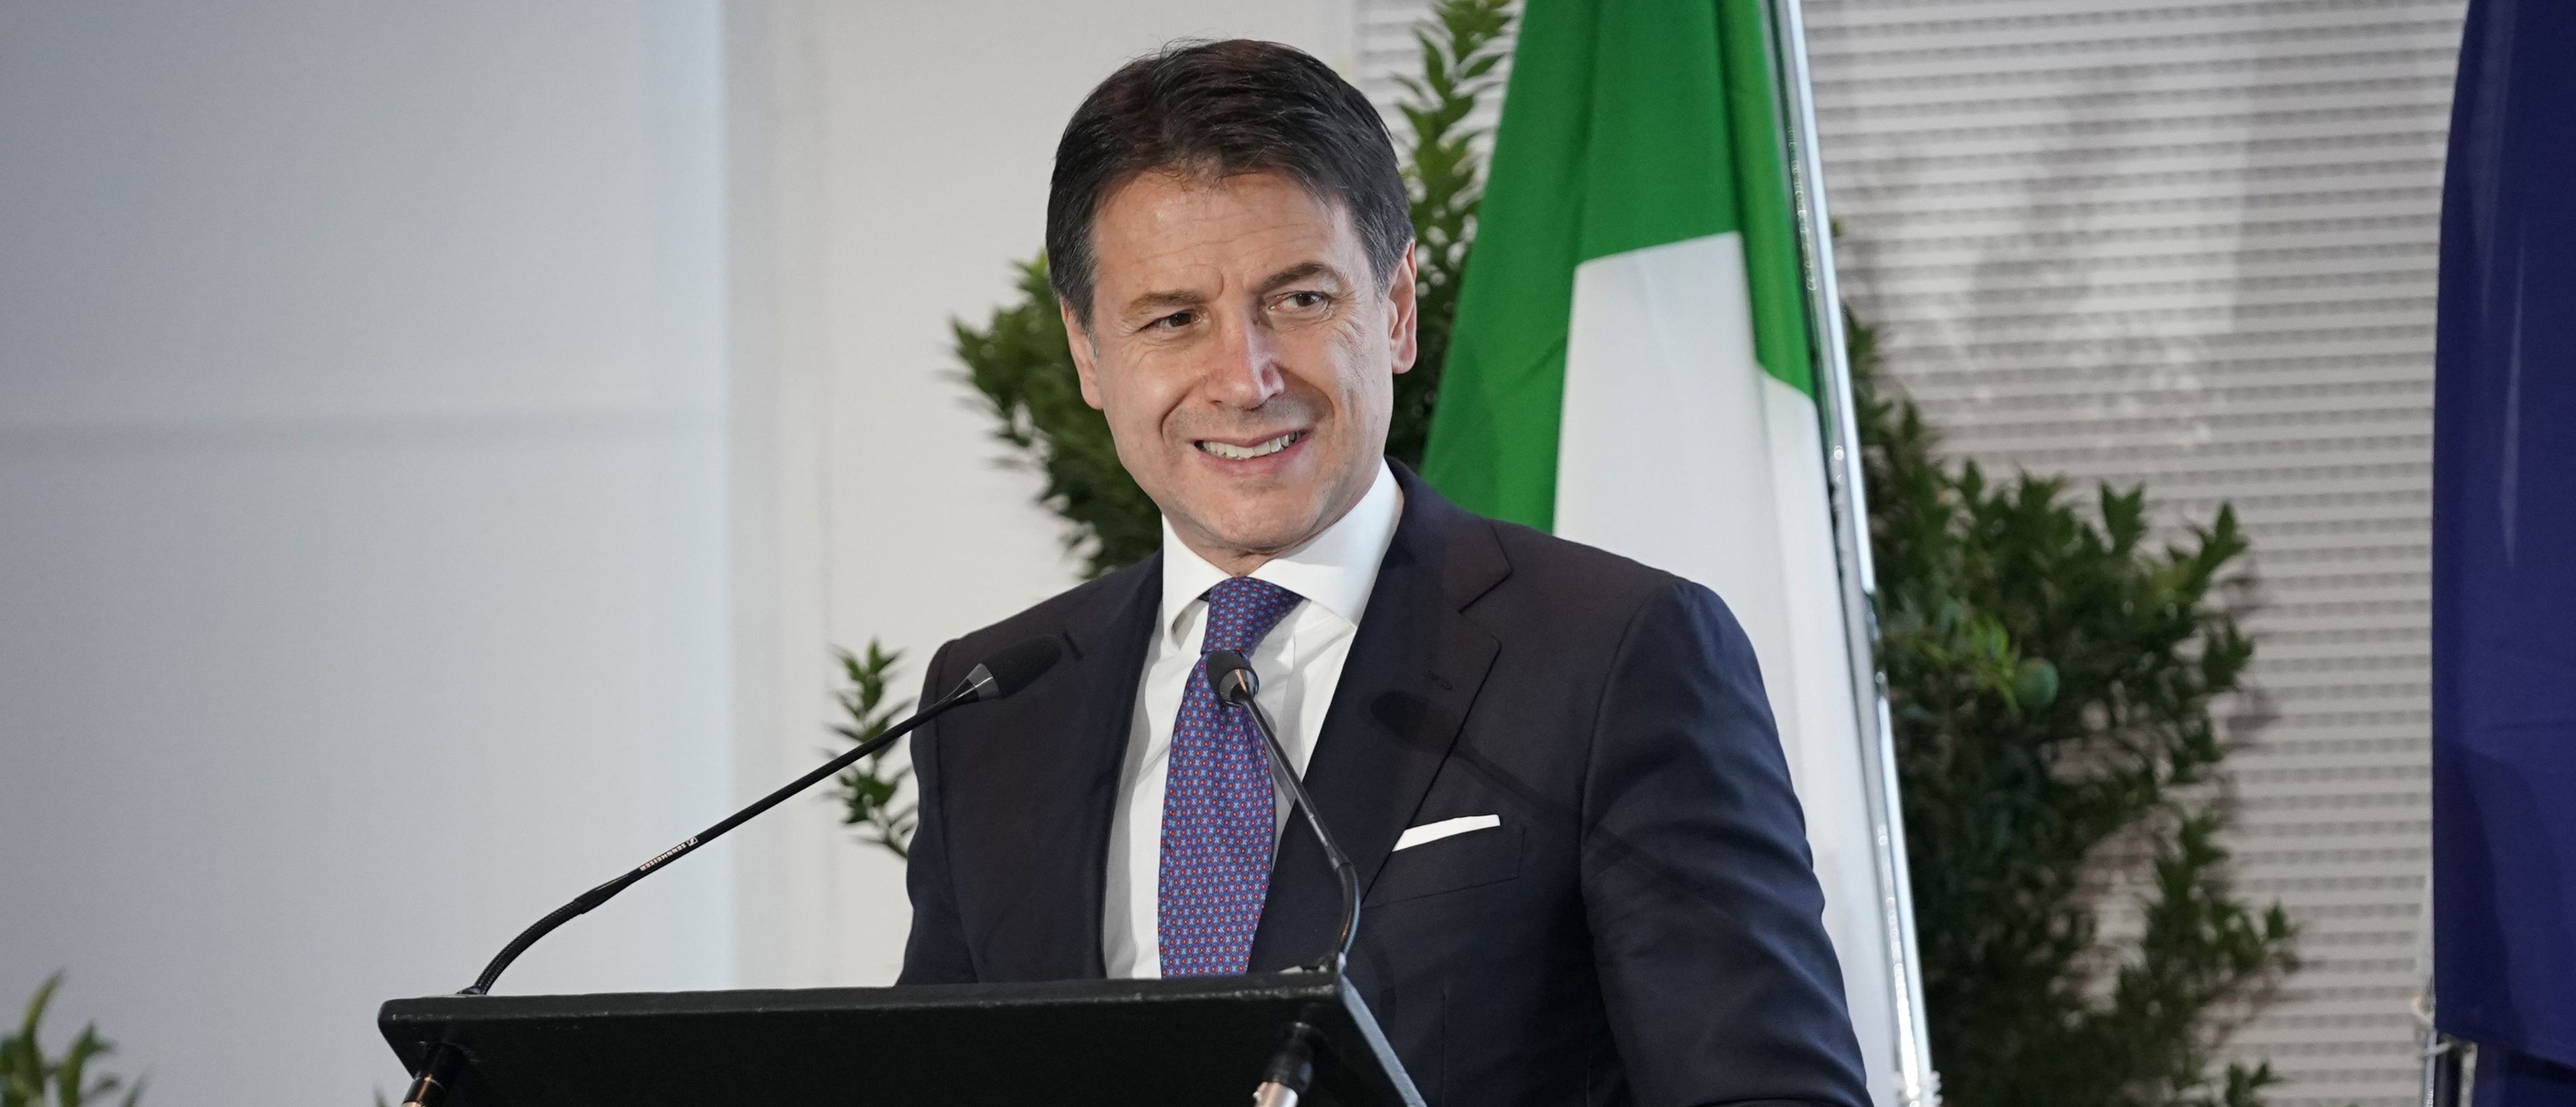 MILAN, ITALY - NOVEMBER 21: Italian Prime Minister Giuseppe Conte attends the World Forum On Urban Forests Calling 2019at Triennale di Milano on November 21, 2019 in Milan, Italy. (Photo by Vittorio Zunino Celotto/Getty Images)